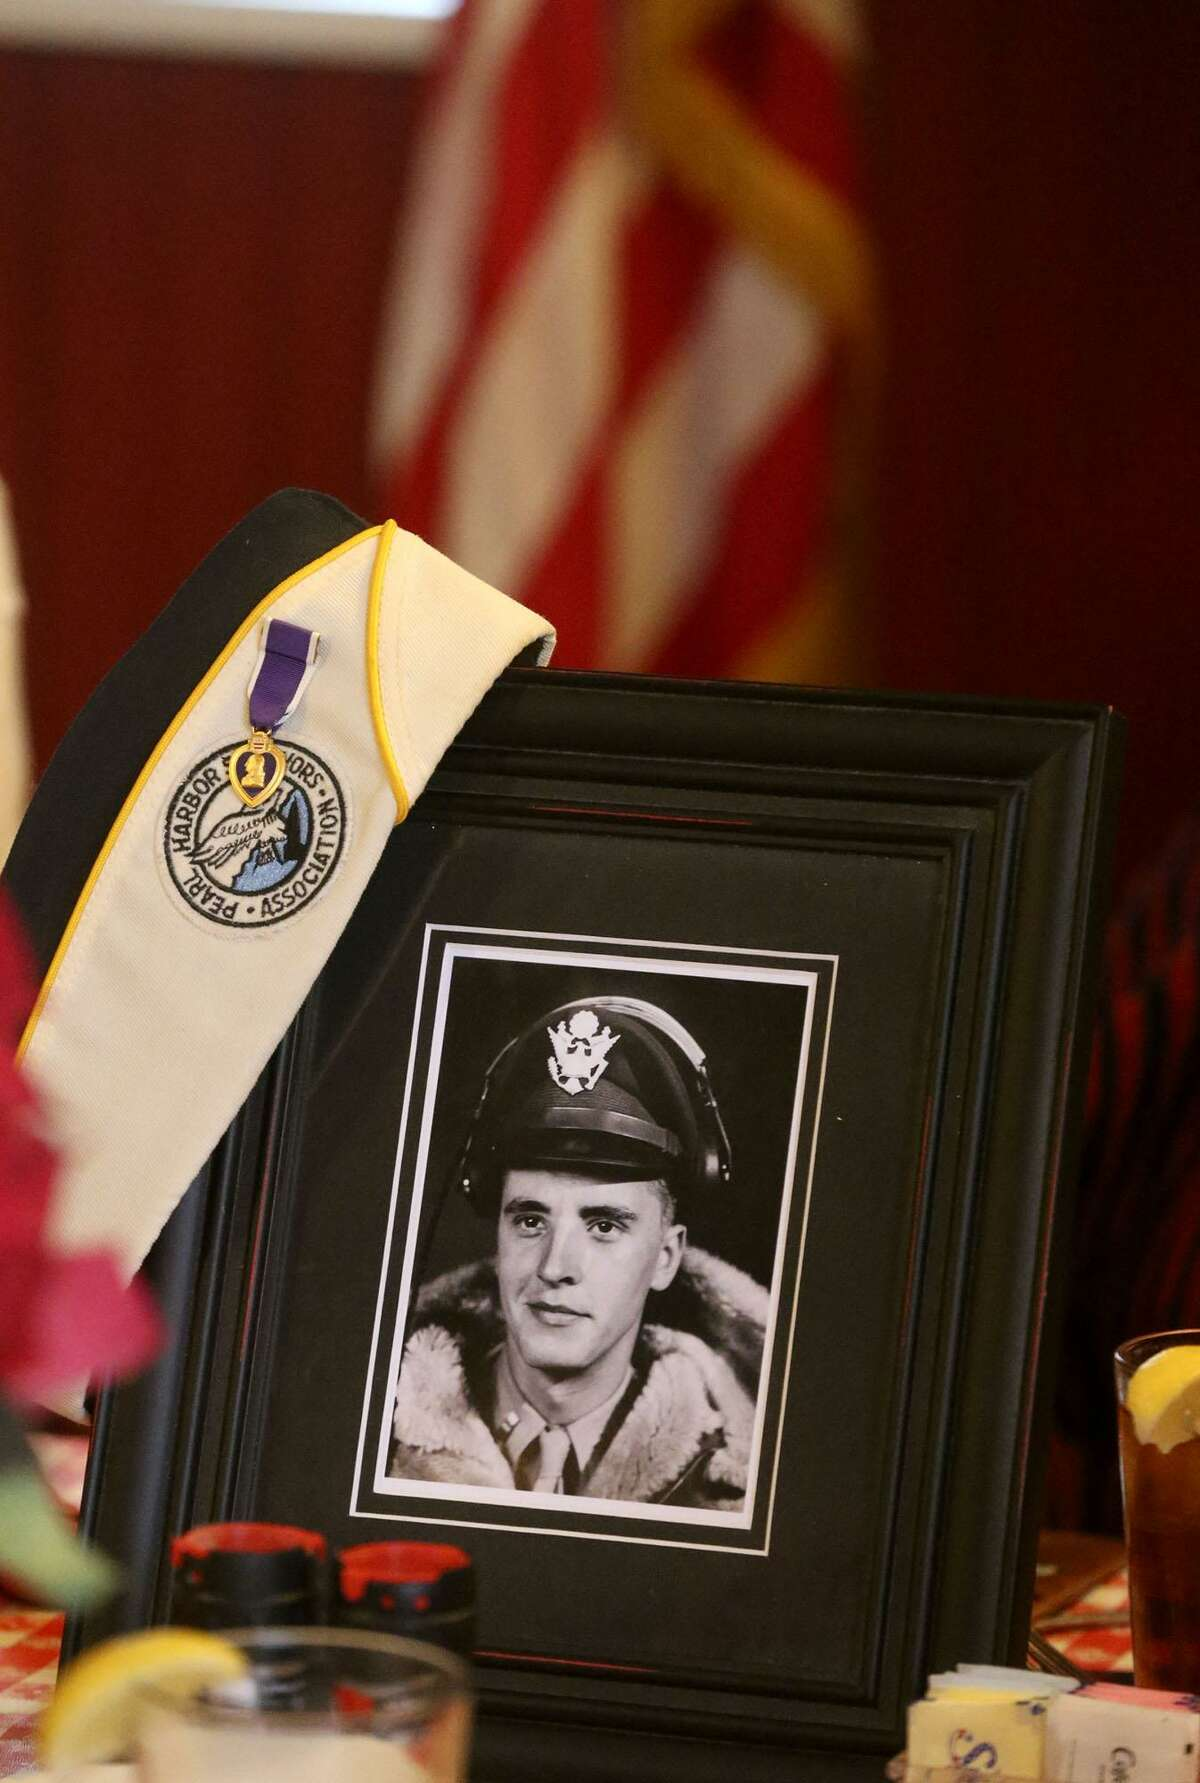 A photo of Pearl Harbor survivor Richard Anderson was placed on a table Thursday December 7, 2017 at a lunch held at the Barn Door restaurant in honor of Pearl Harbor survivors. Anderson later in the war became a B-24 bomber pilot. Richard Anderson passed away last October. Pearl Harbor was attacked by the Japanese December 7, 1941.